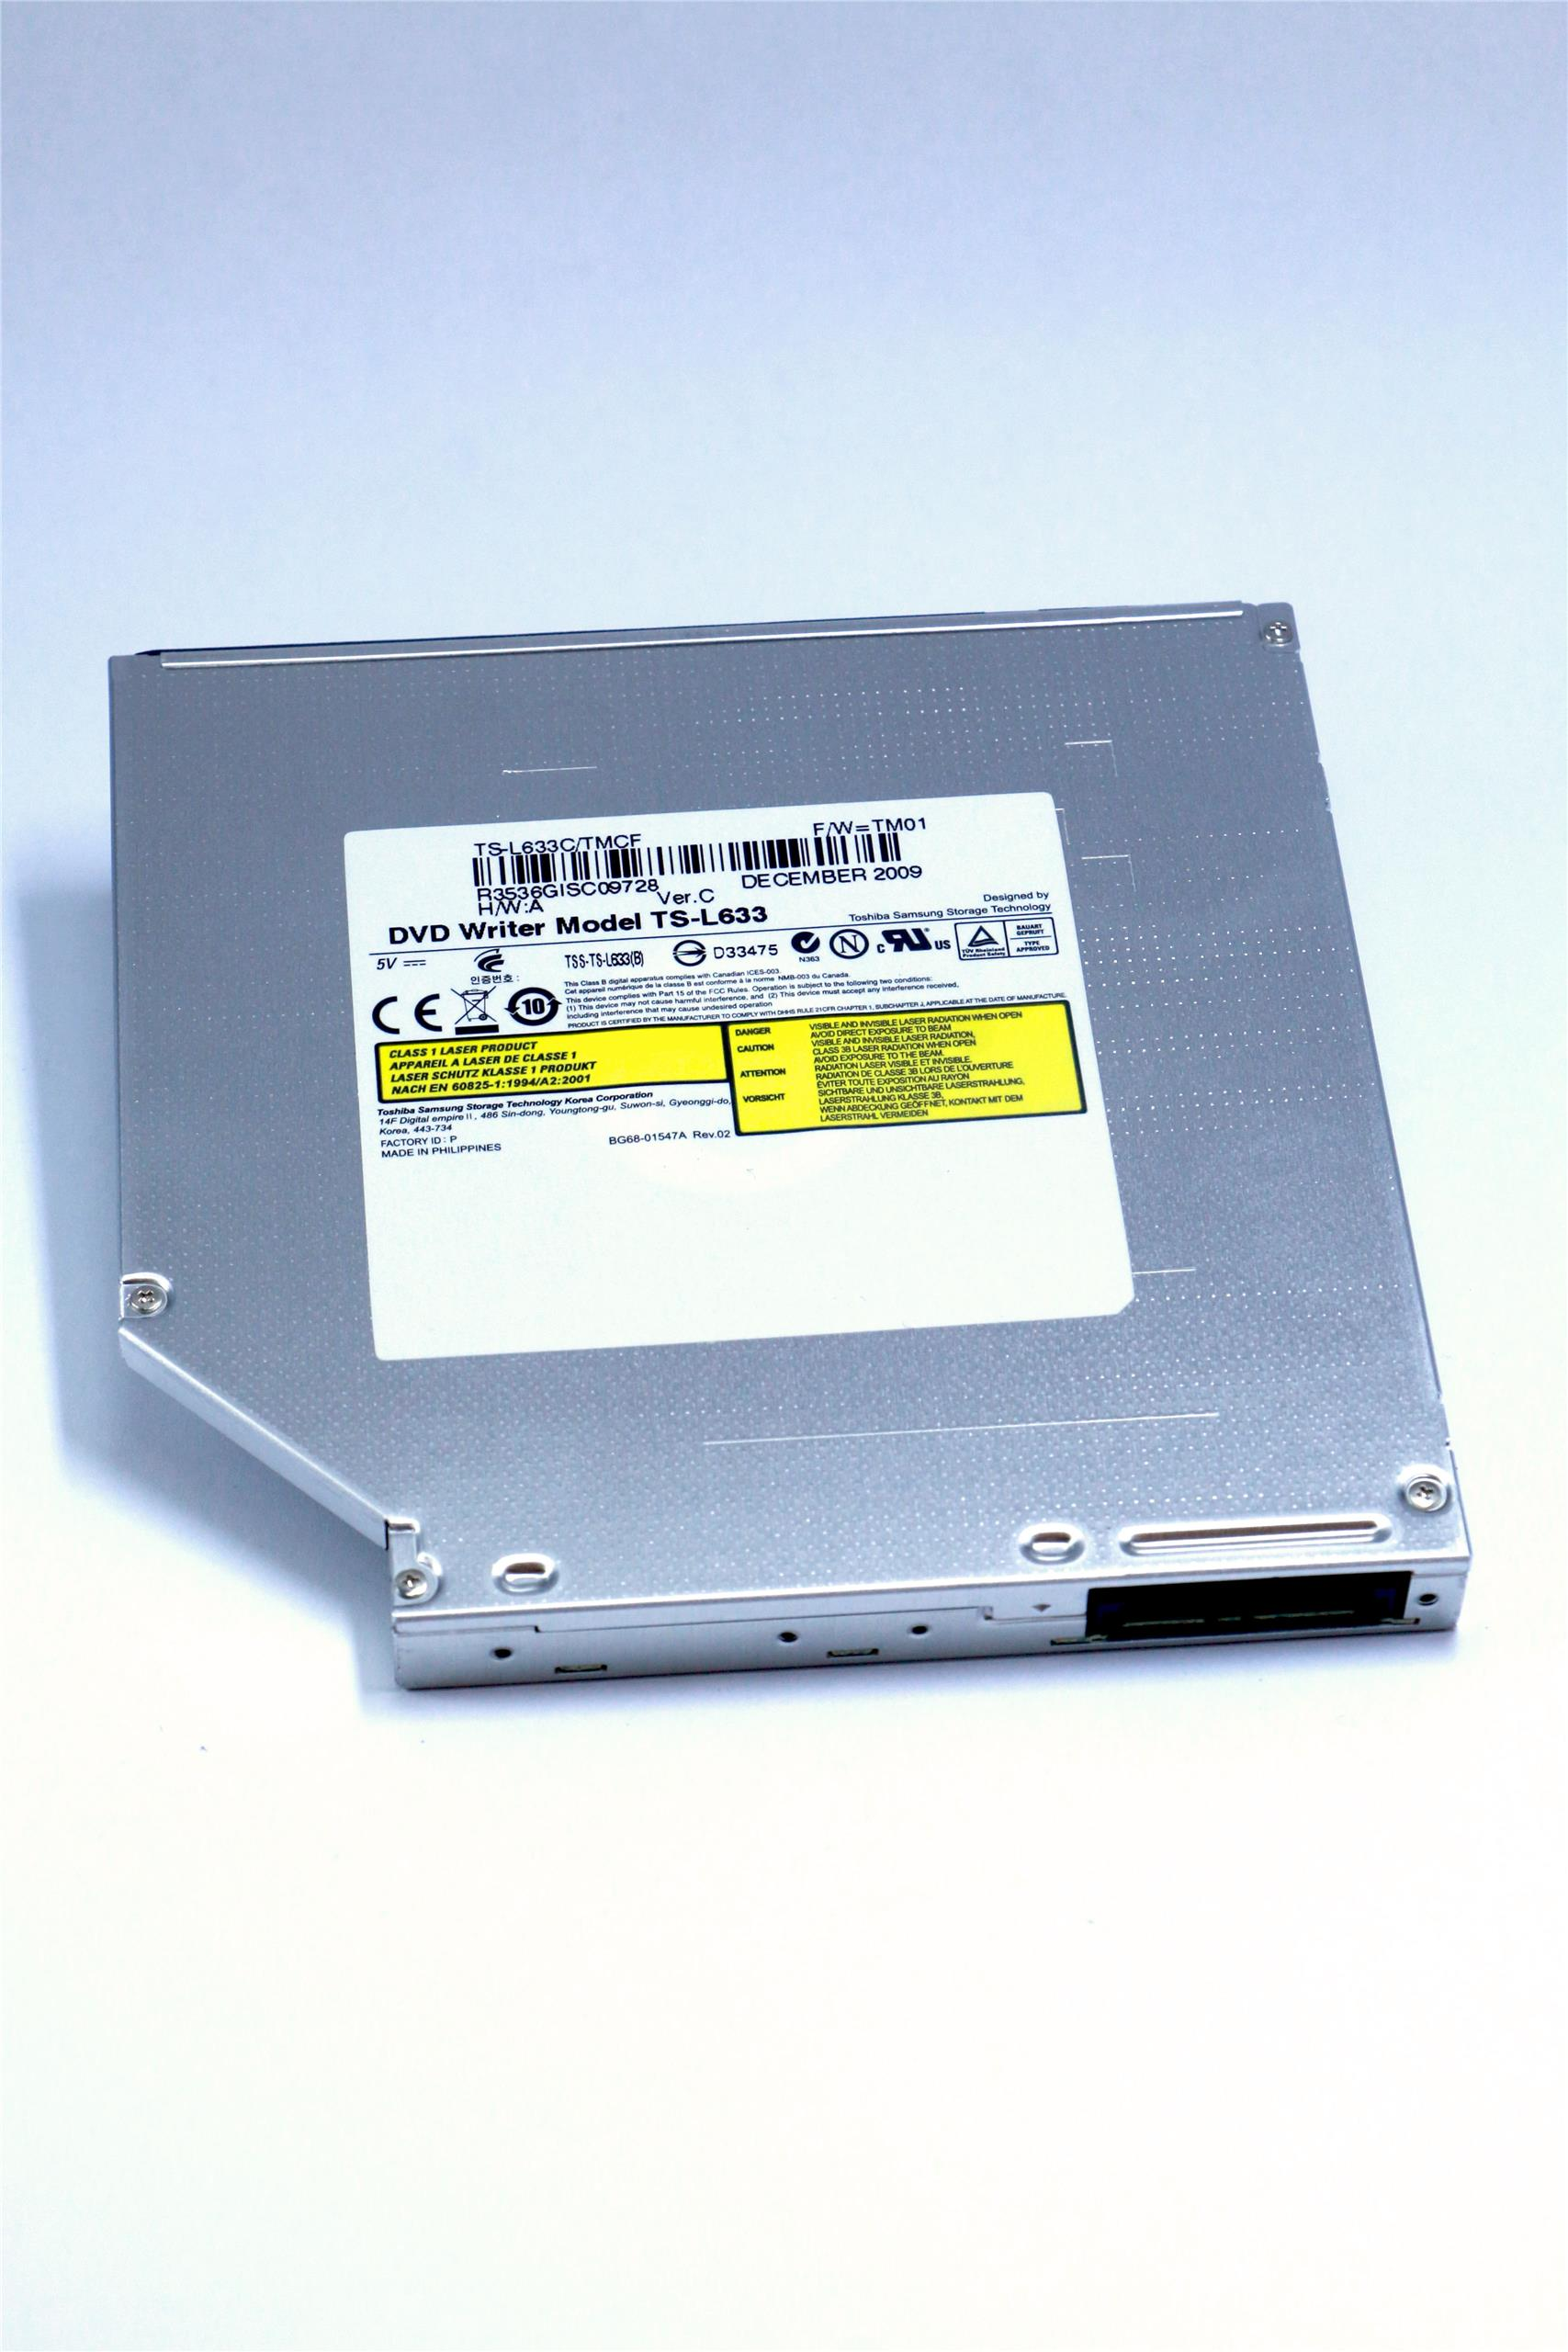 Dell TS-L633 Slim Dvd±Rw Optical Drive